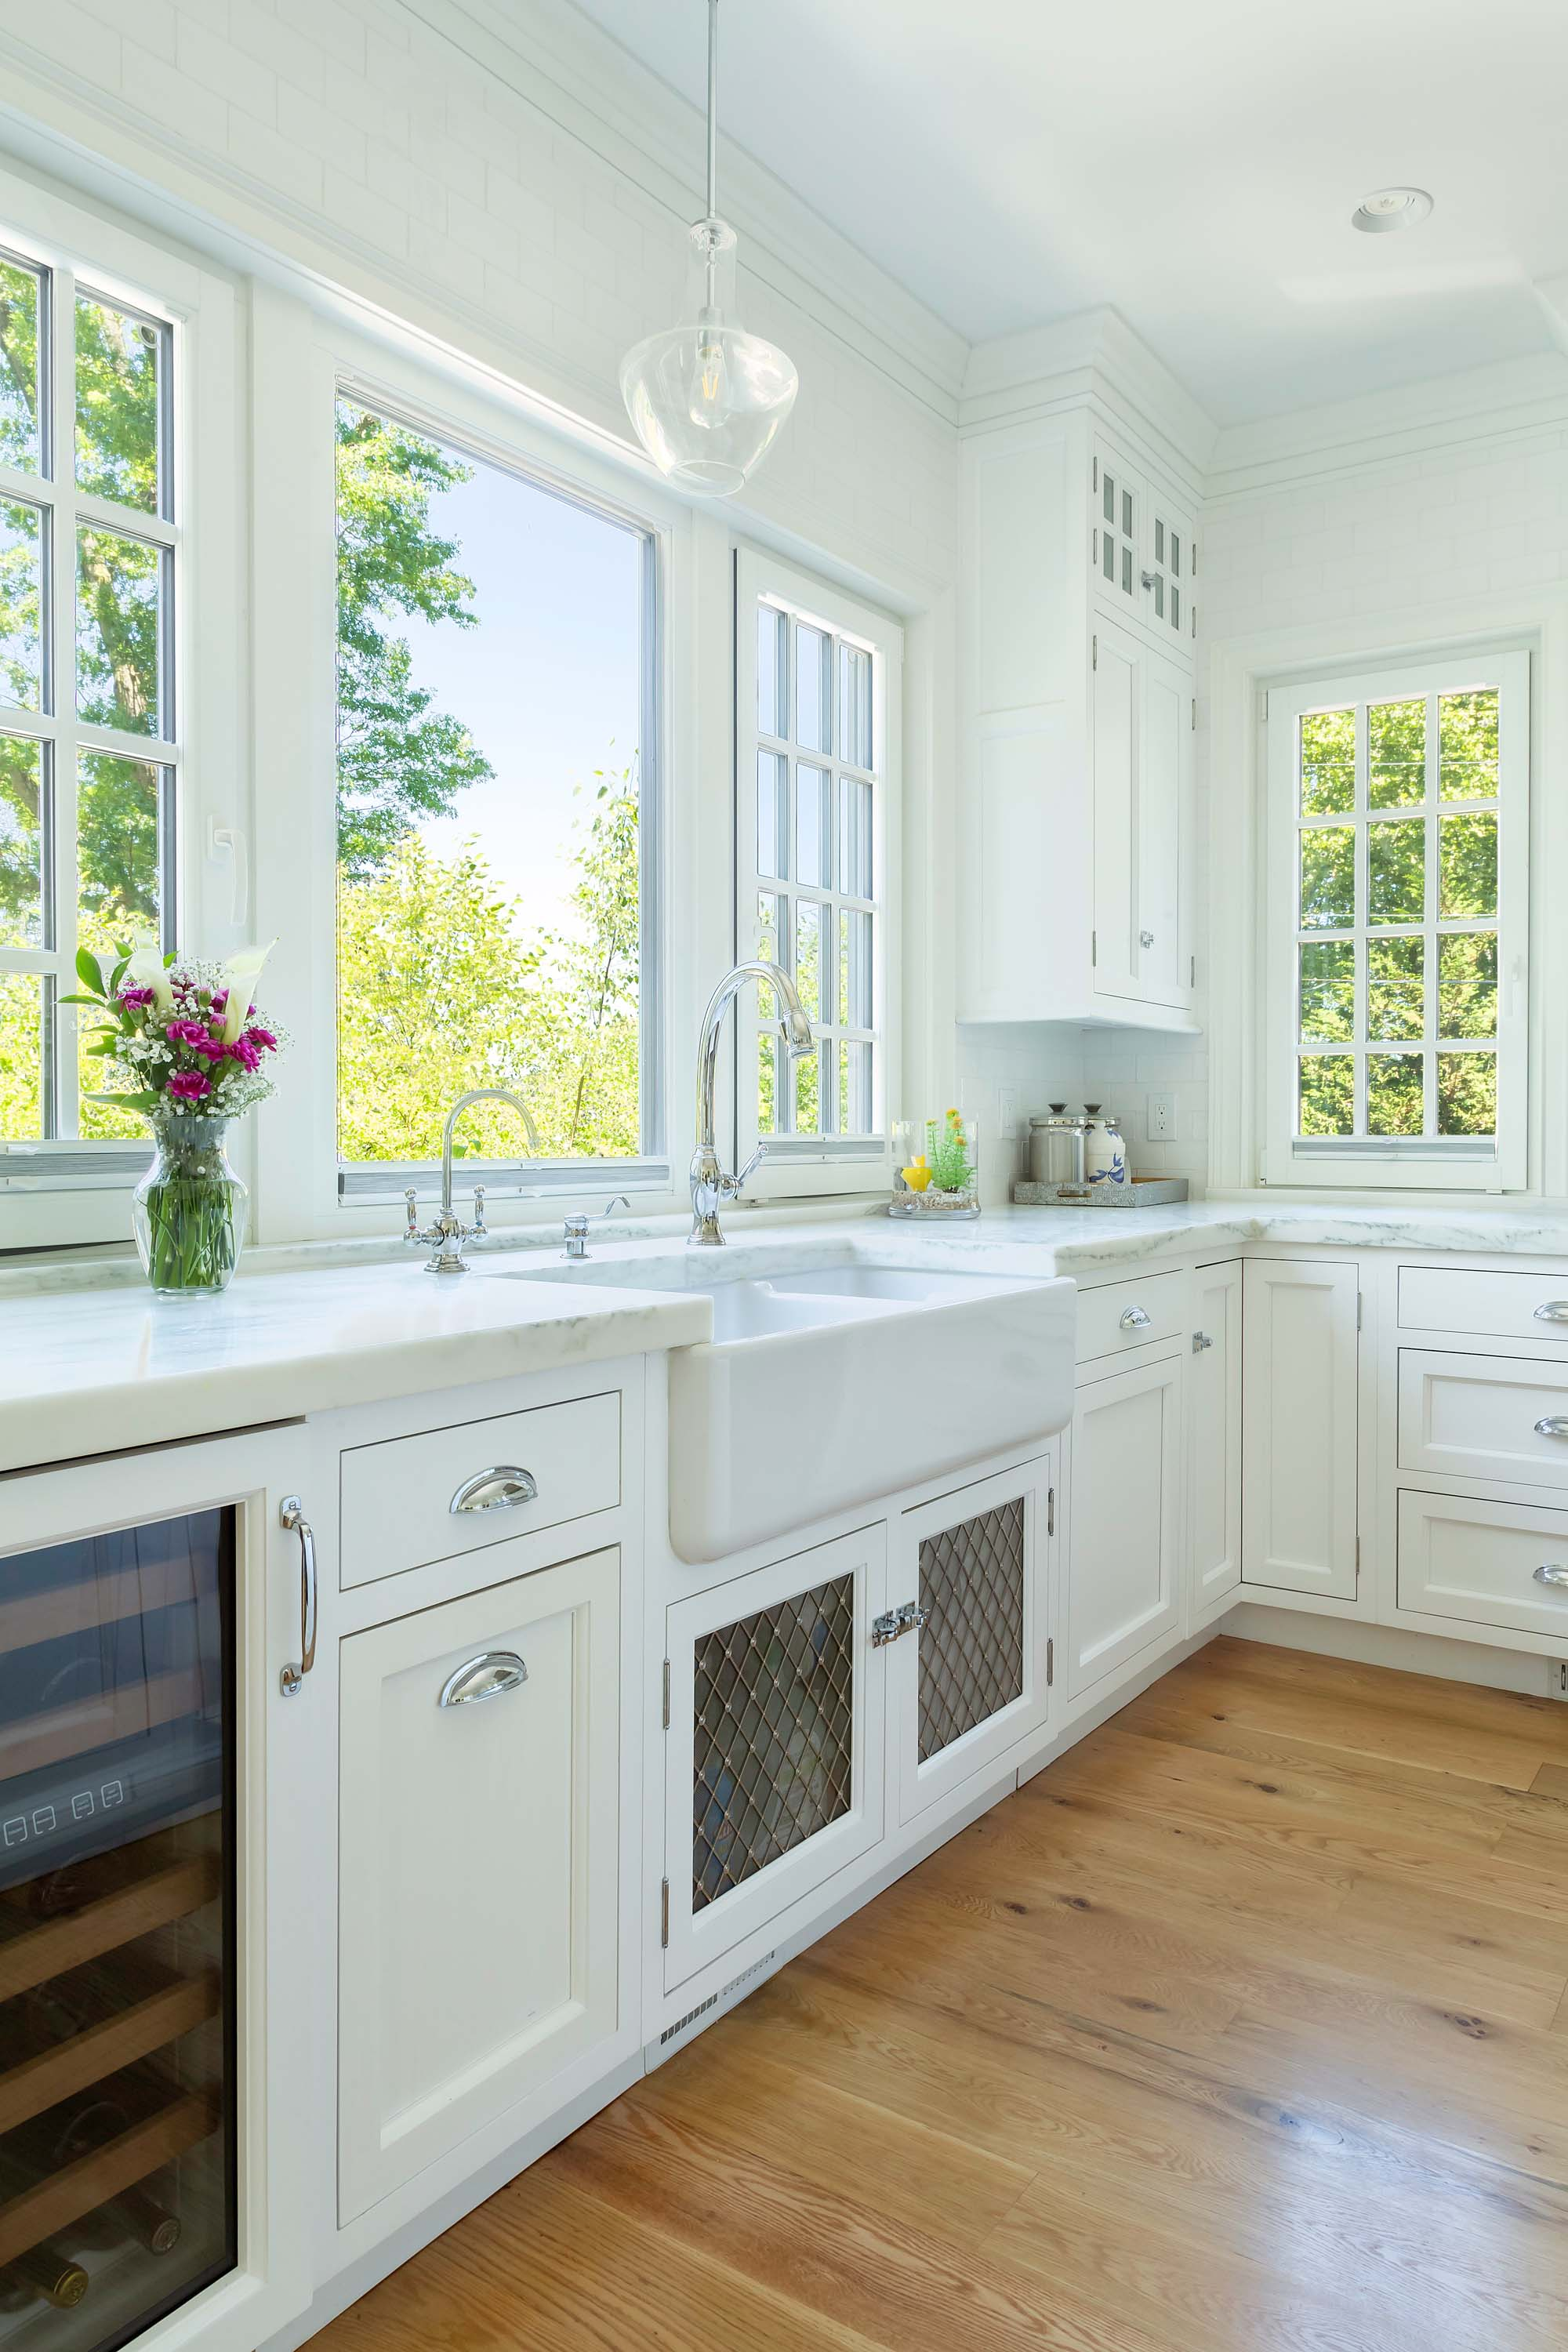 Transitional white kitchen with farmhouse sink